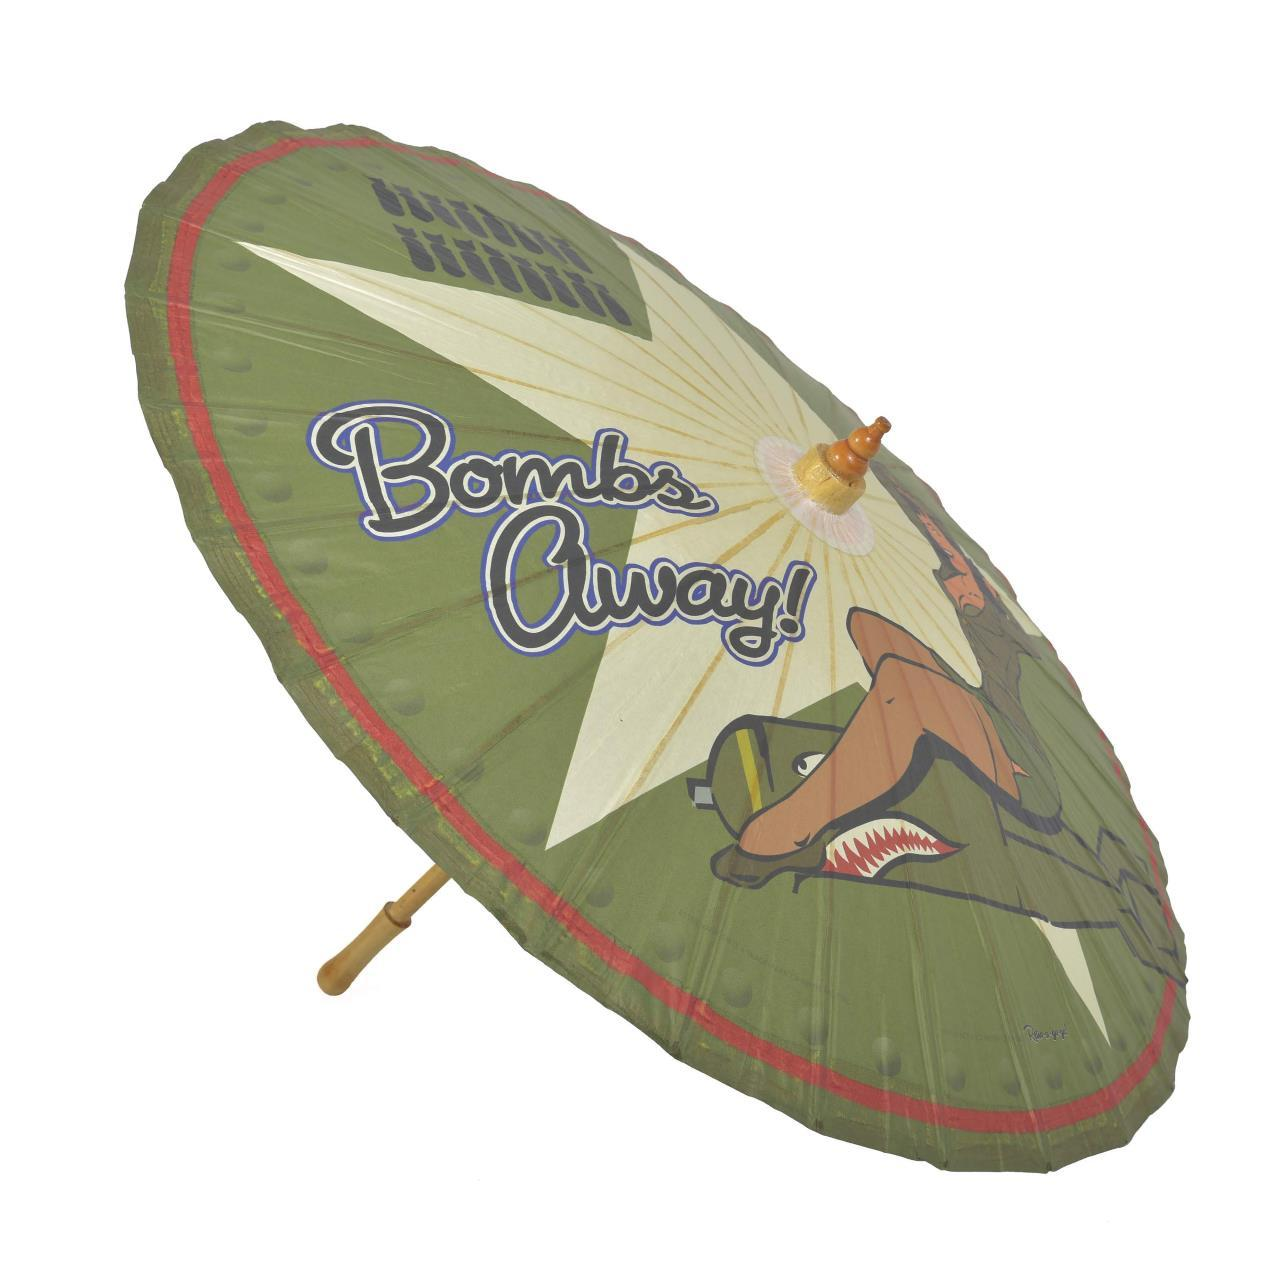 Bettie-Page-Bombs-Away-Parasol-0659682815268_image2__52535_1559335013_1280_1280